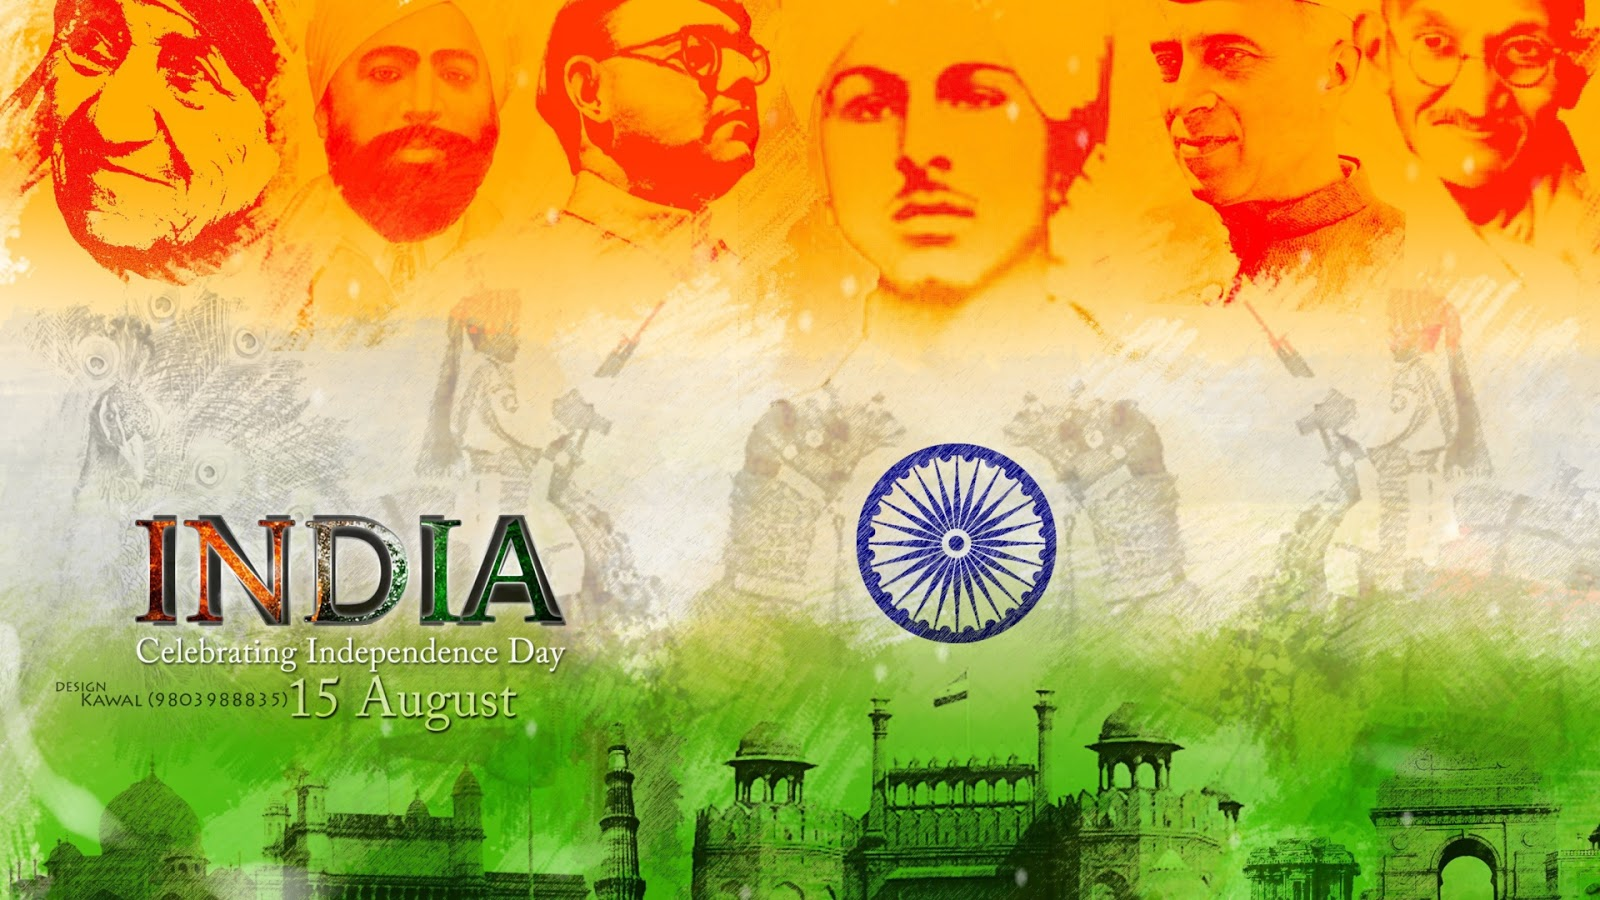 Latest 15th August 2018 Wallpapers And 15 August Independence Day Hd